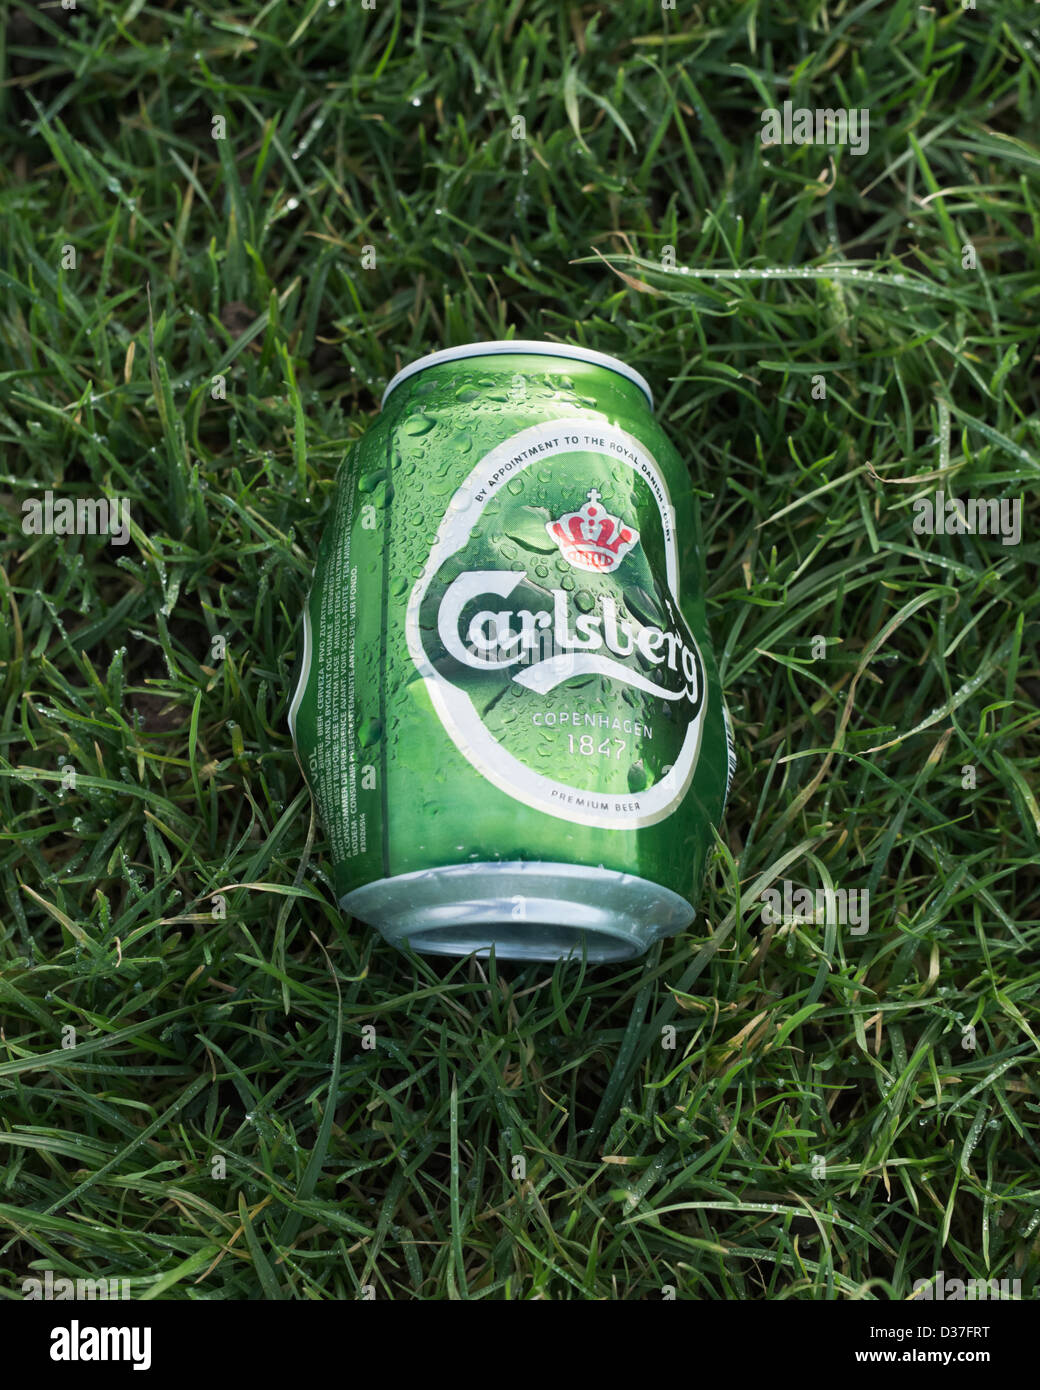 Carlsberg aluminium beer can. FOR EDITORIAL USE ONLY. - Stock Image